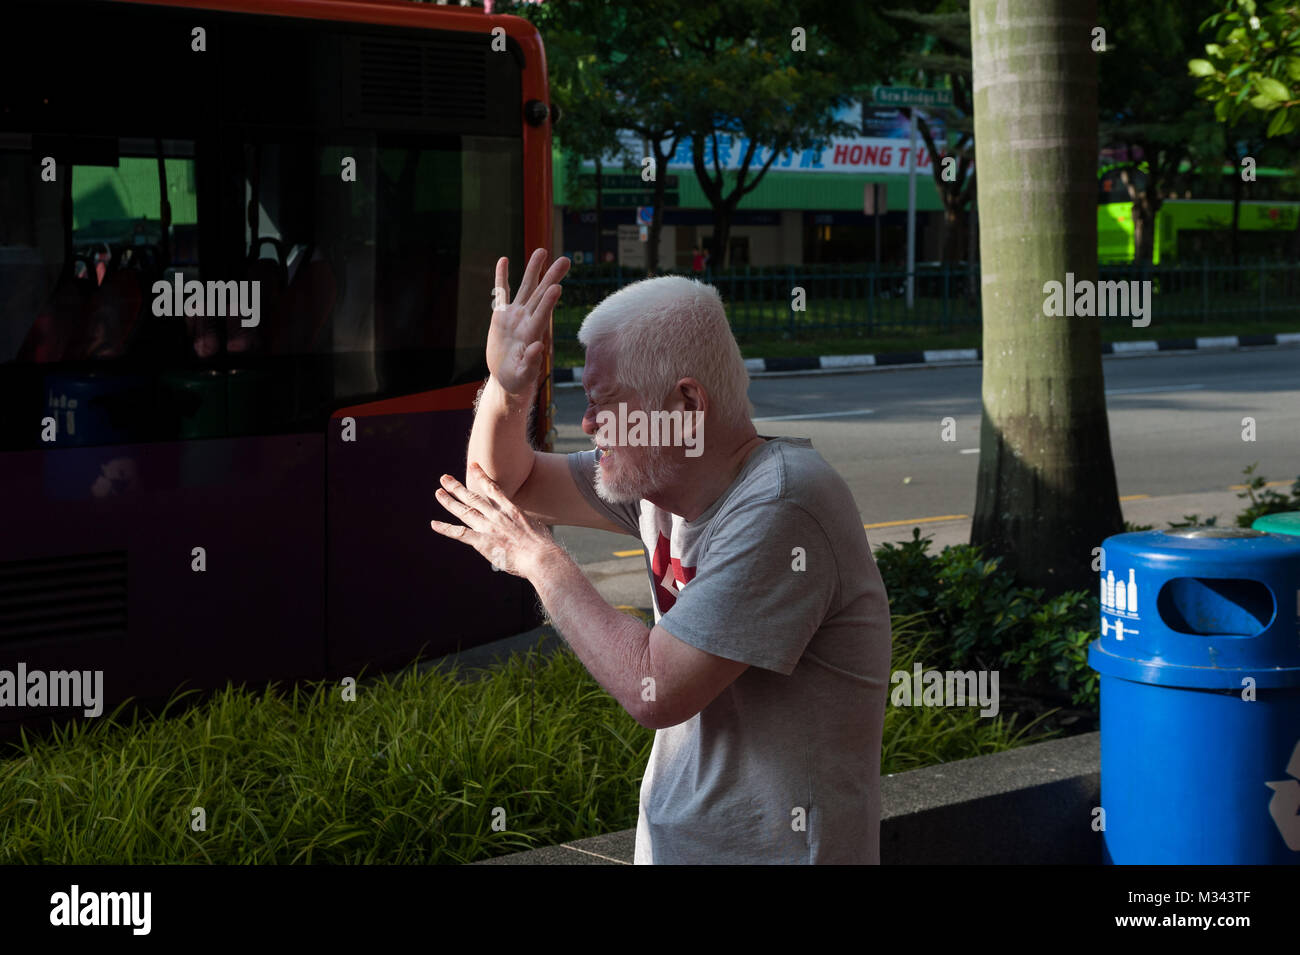 21.12.2017, Singapore, Republic of Singapore, Asia - A man is seen shielding his face from the low sun in Singapore's - Stock Image